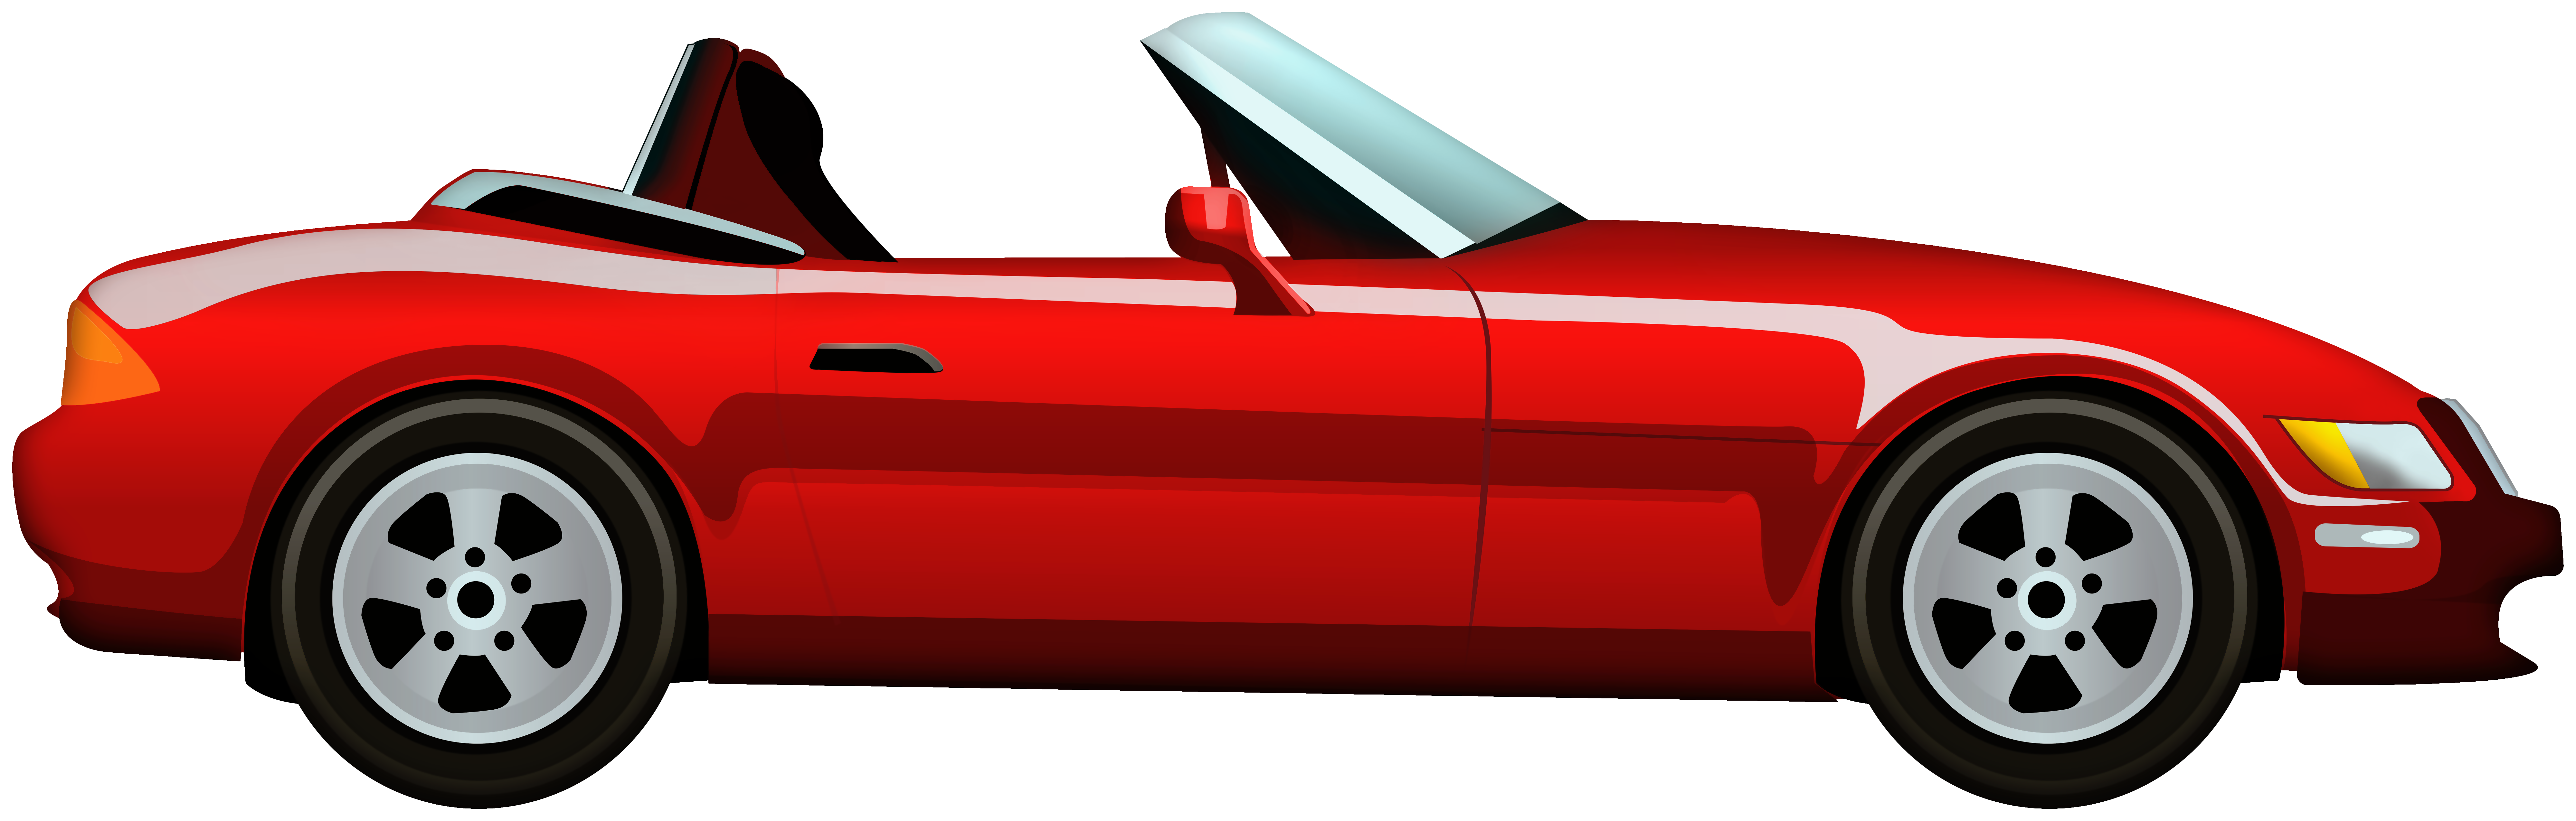 picture transparent download Clipart cars. Red cabriolet car png.